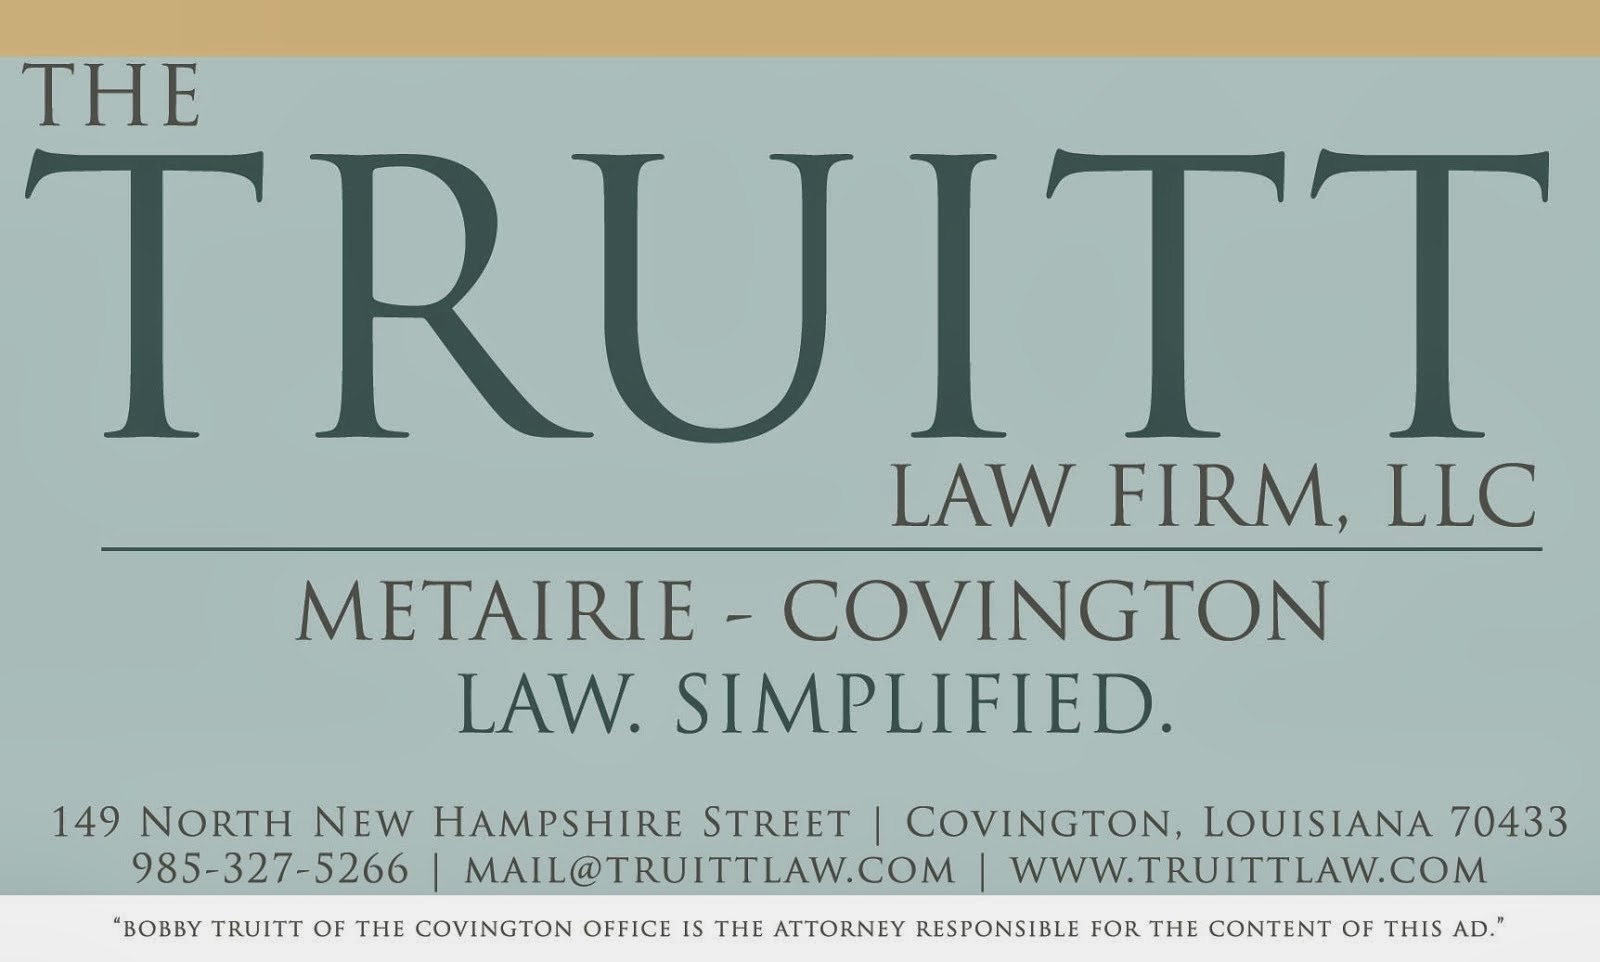 The Truitt Law Firm, Inc.